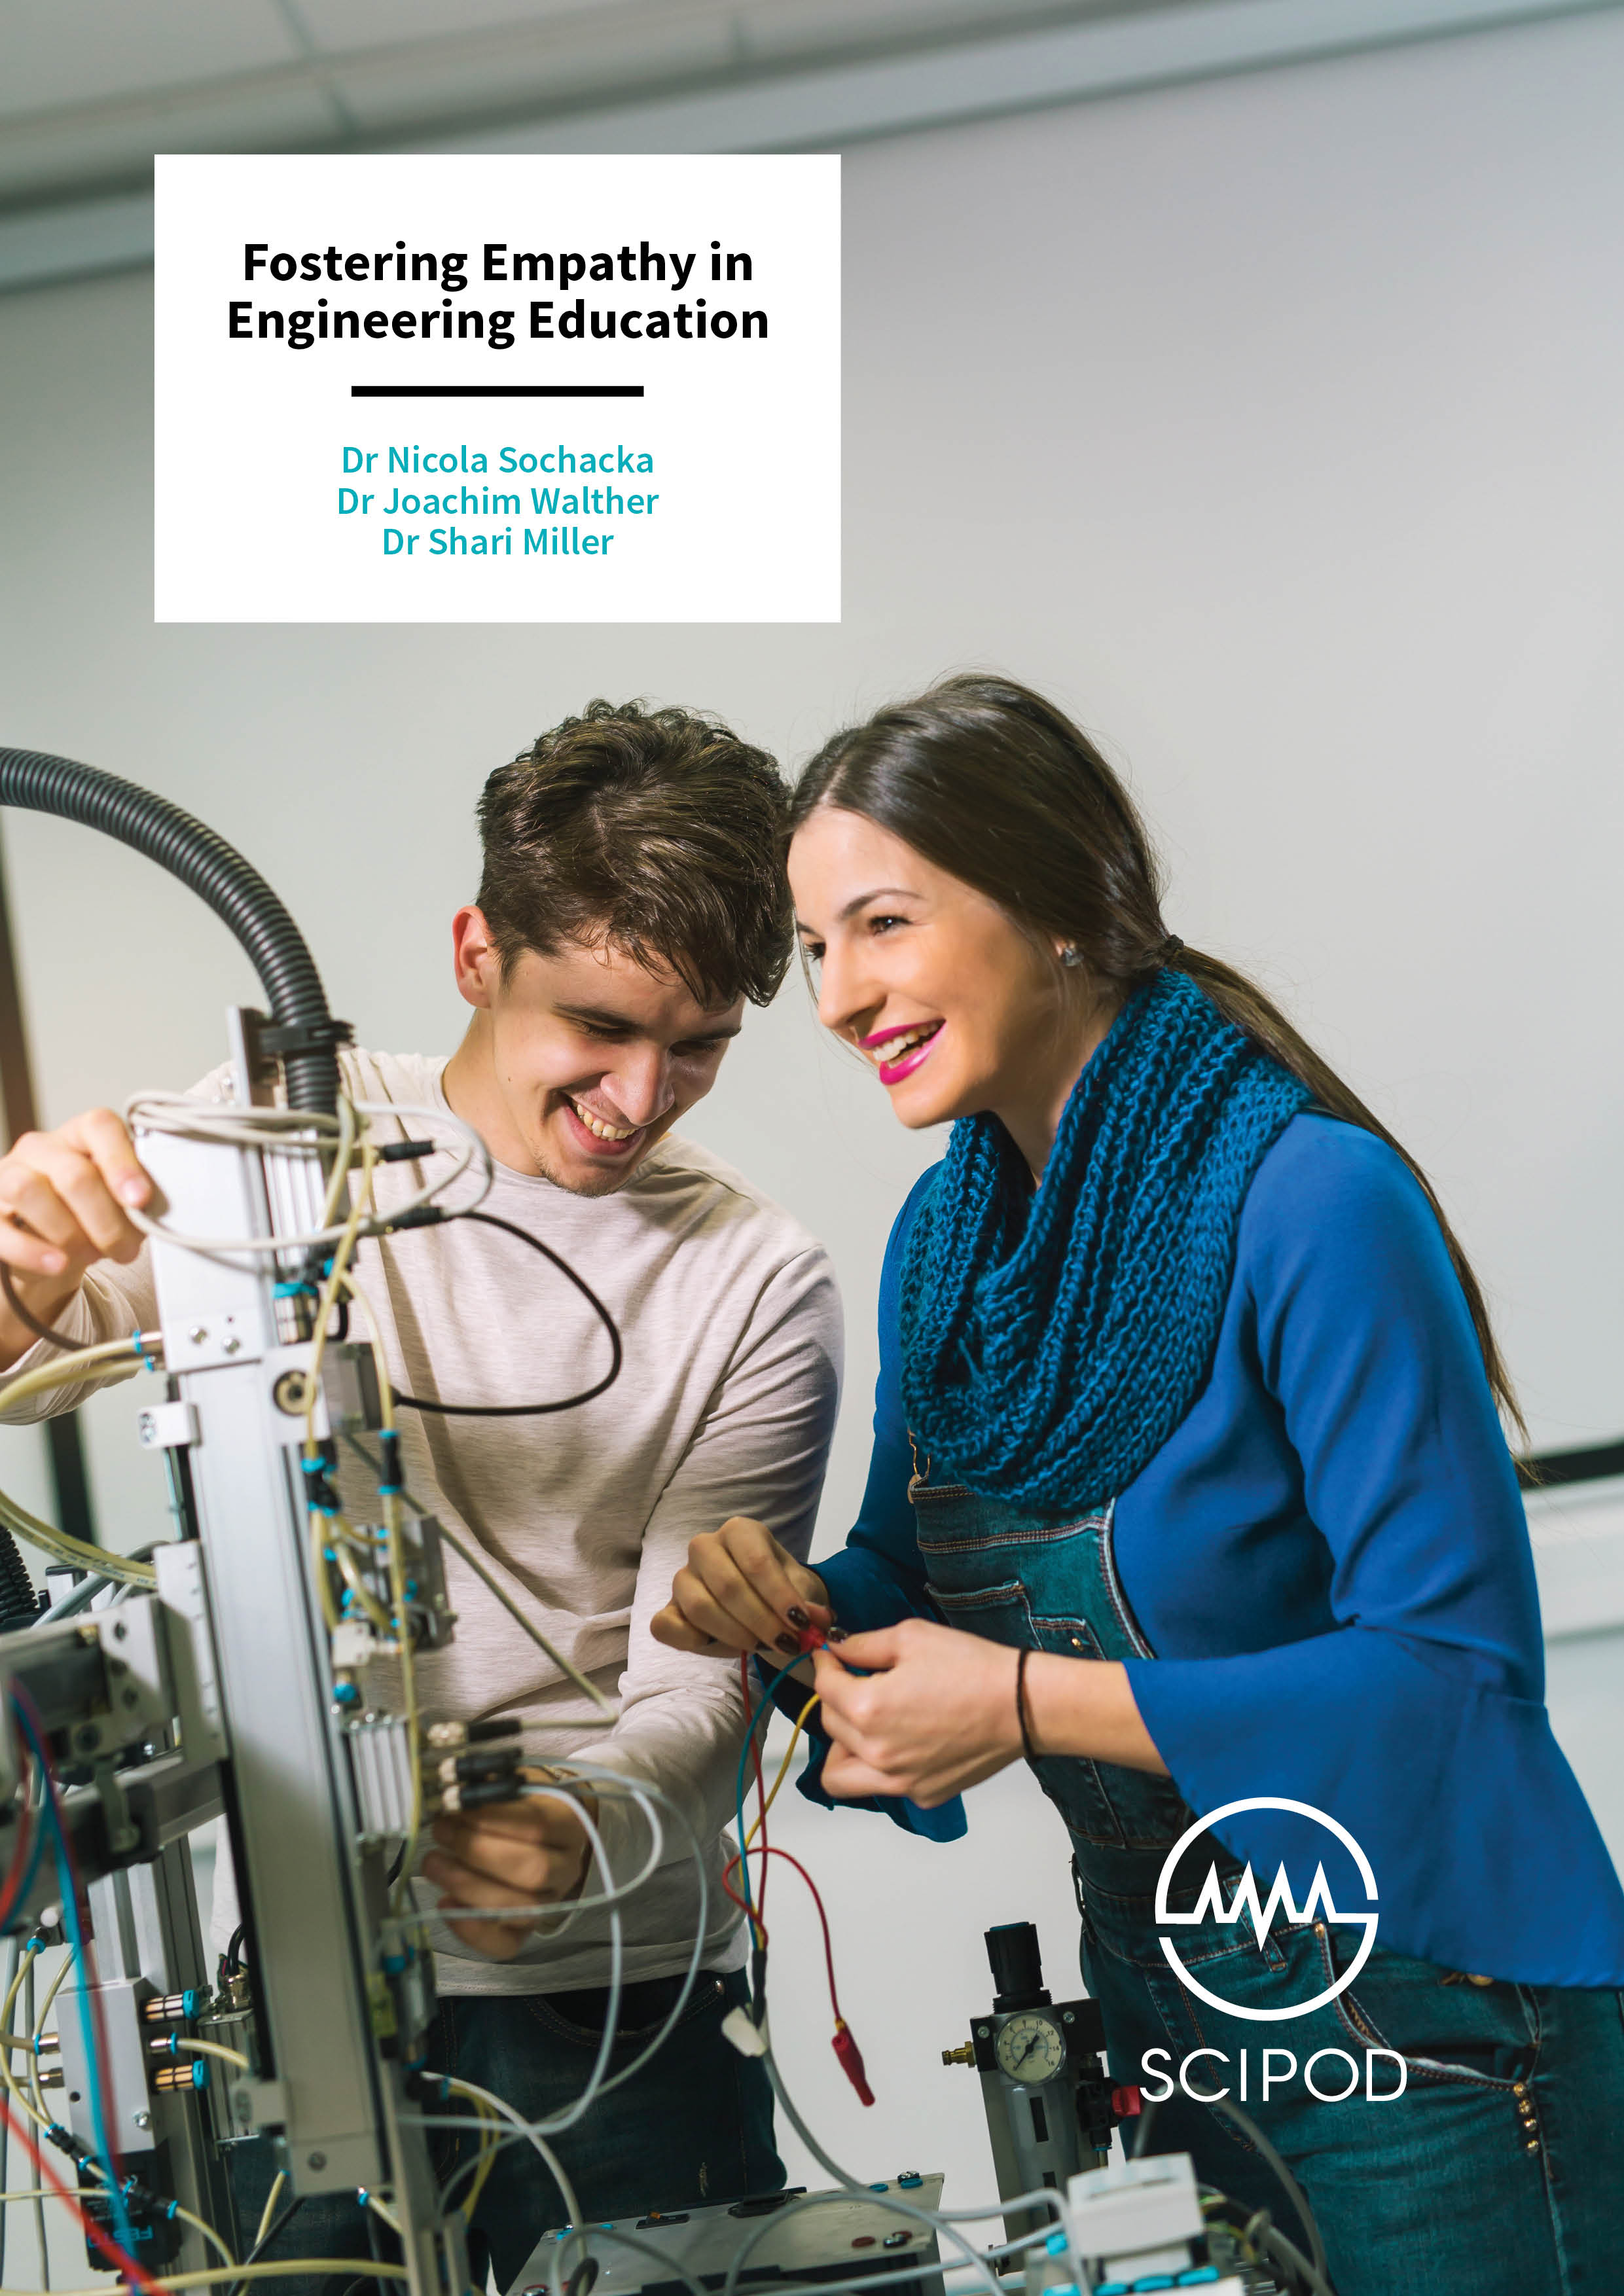 Fostering Empathy in Engineering Education – Dr Nicola Sochacka, Dr Joachim Walther and Dr Shari Miller